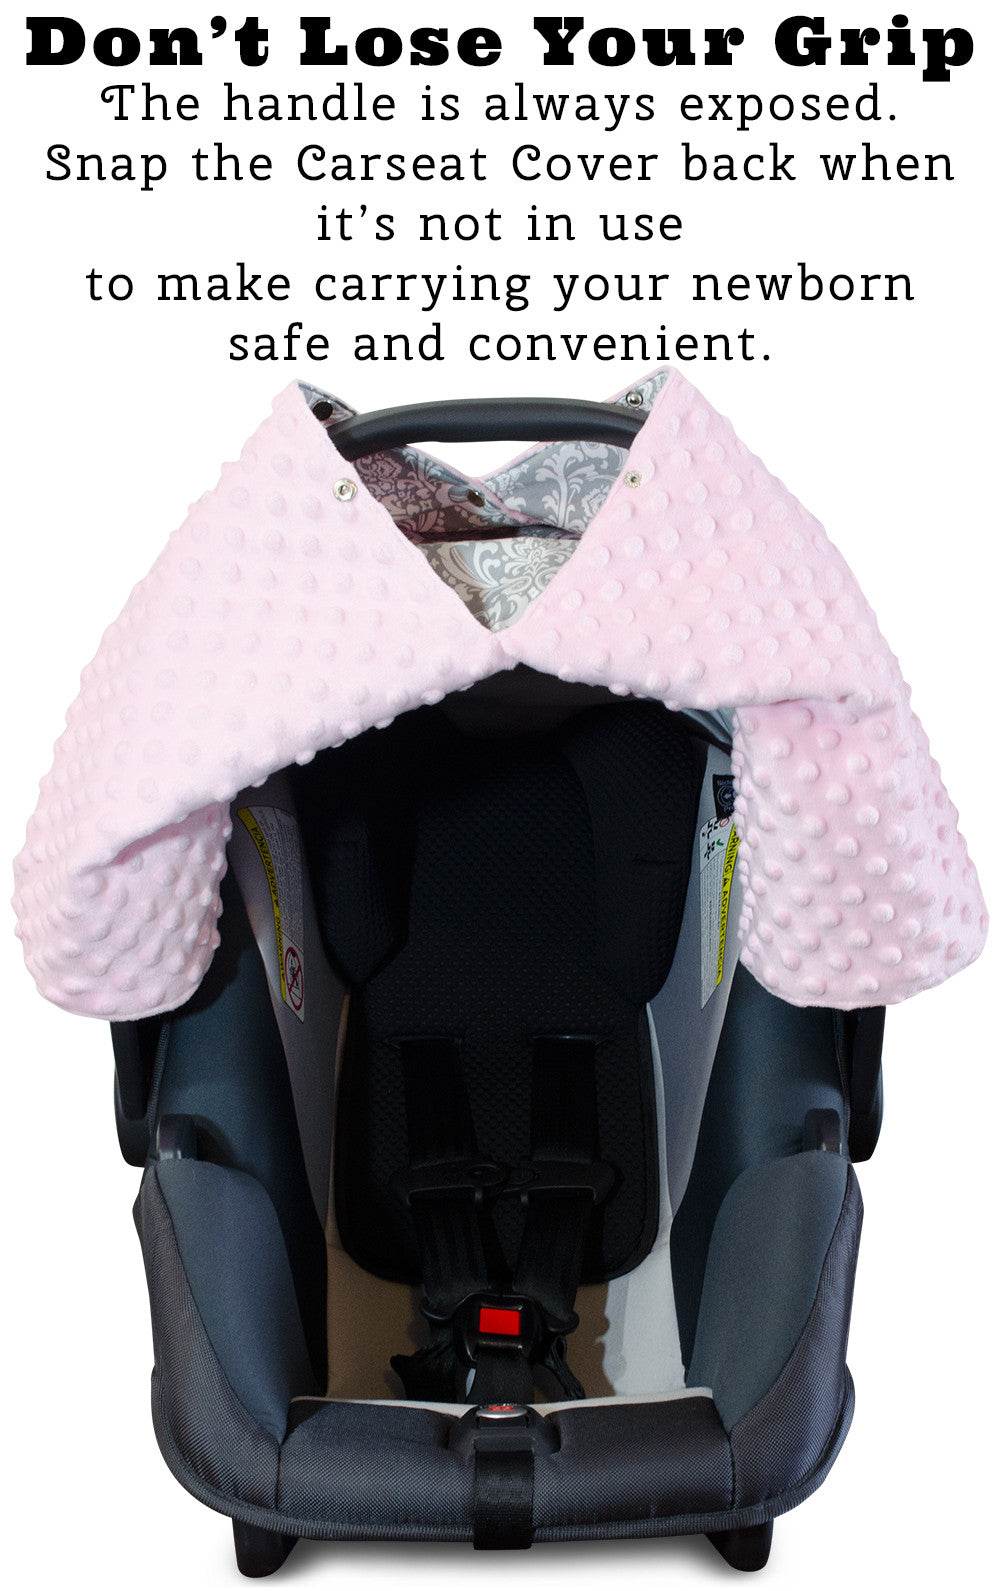 Damask Car Seat Canopy With Baby Pink Dot Minky And Peekaboo OpeningTM